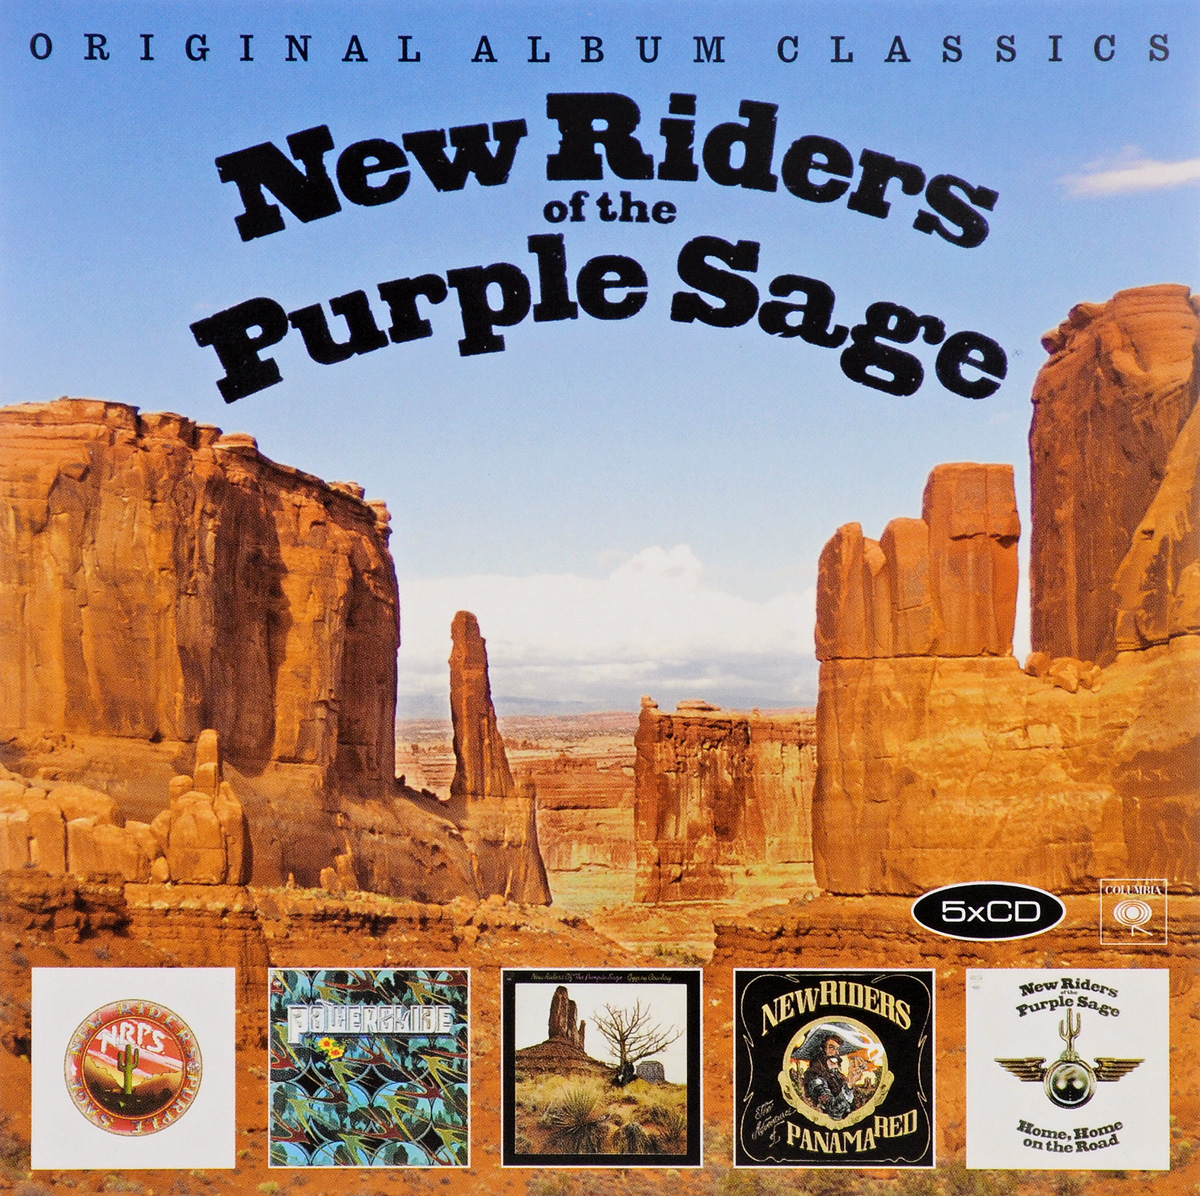 New Riders Of The Purple Sage New Riders Of The Purple Sage. Original Album Classics (New Riders Of The Purple Sage / Powerglide / Gypsy Cowboy / The Adventures Of Panama Red / Home, Home On The Road) an exploratory study of assessment of visual arts in education